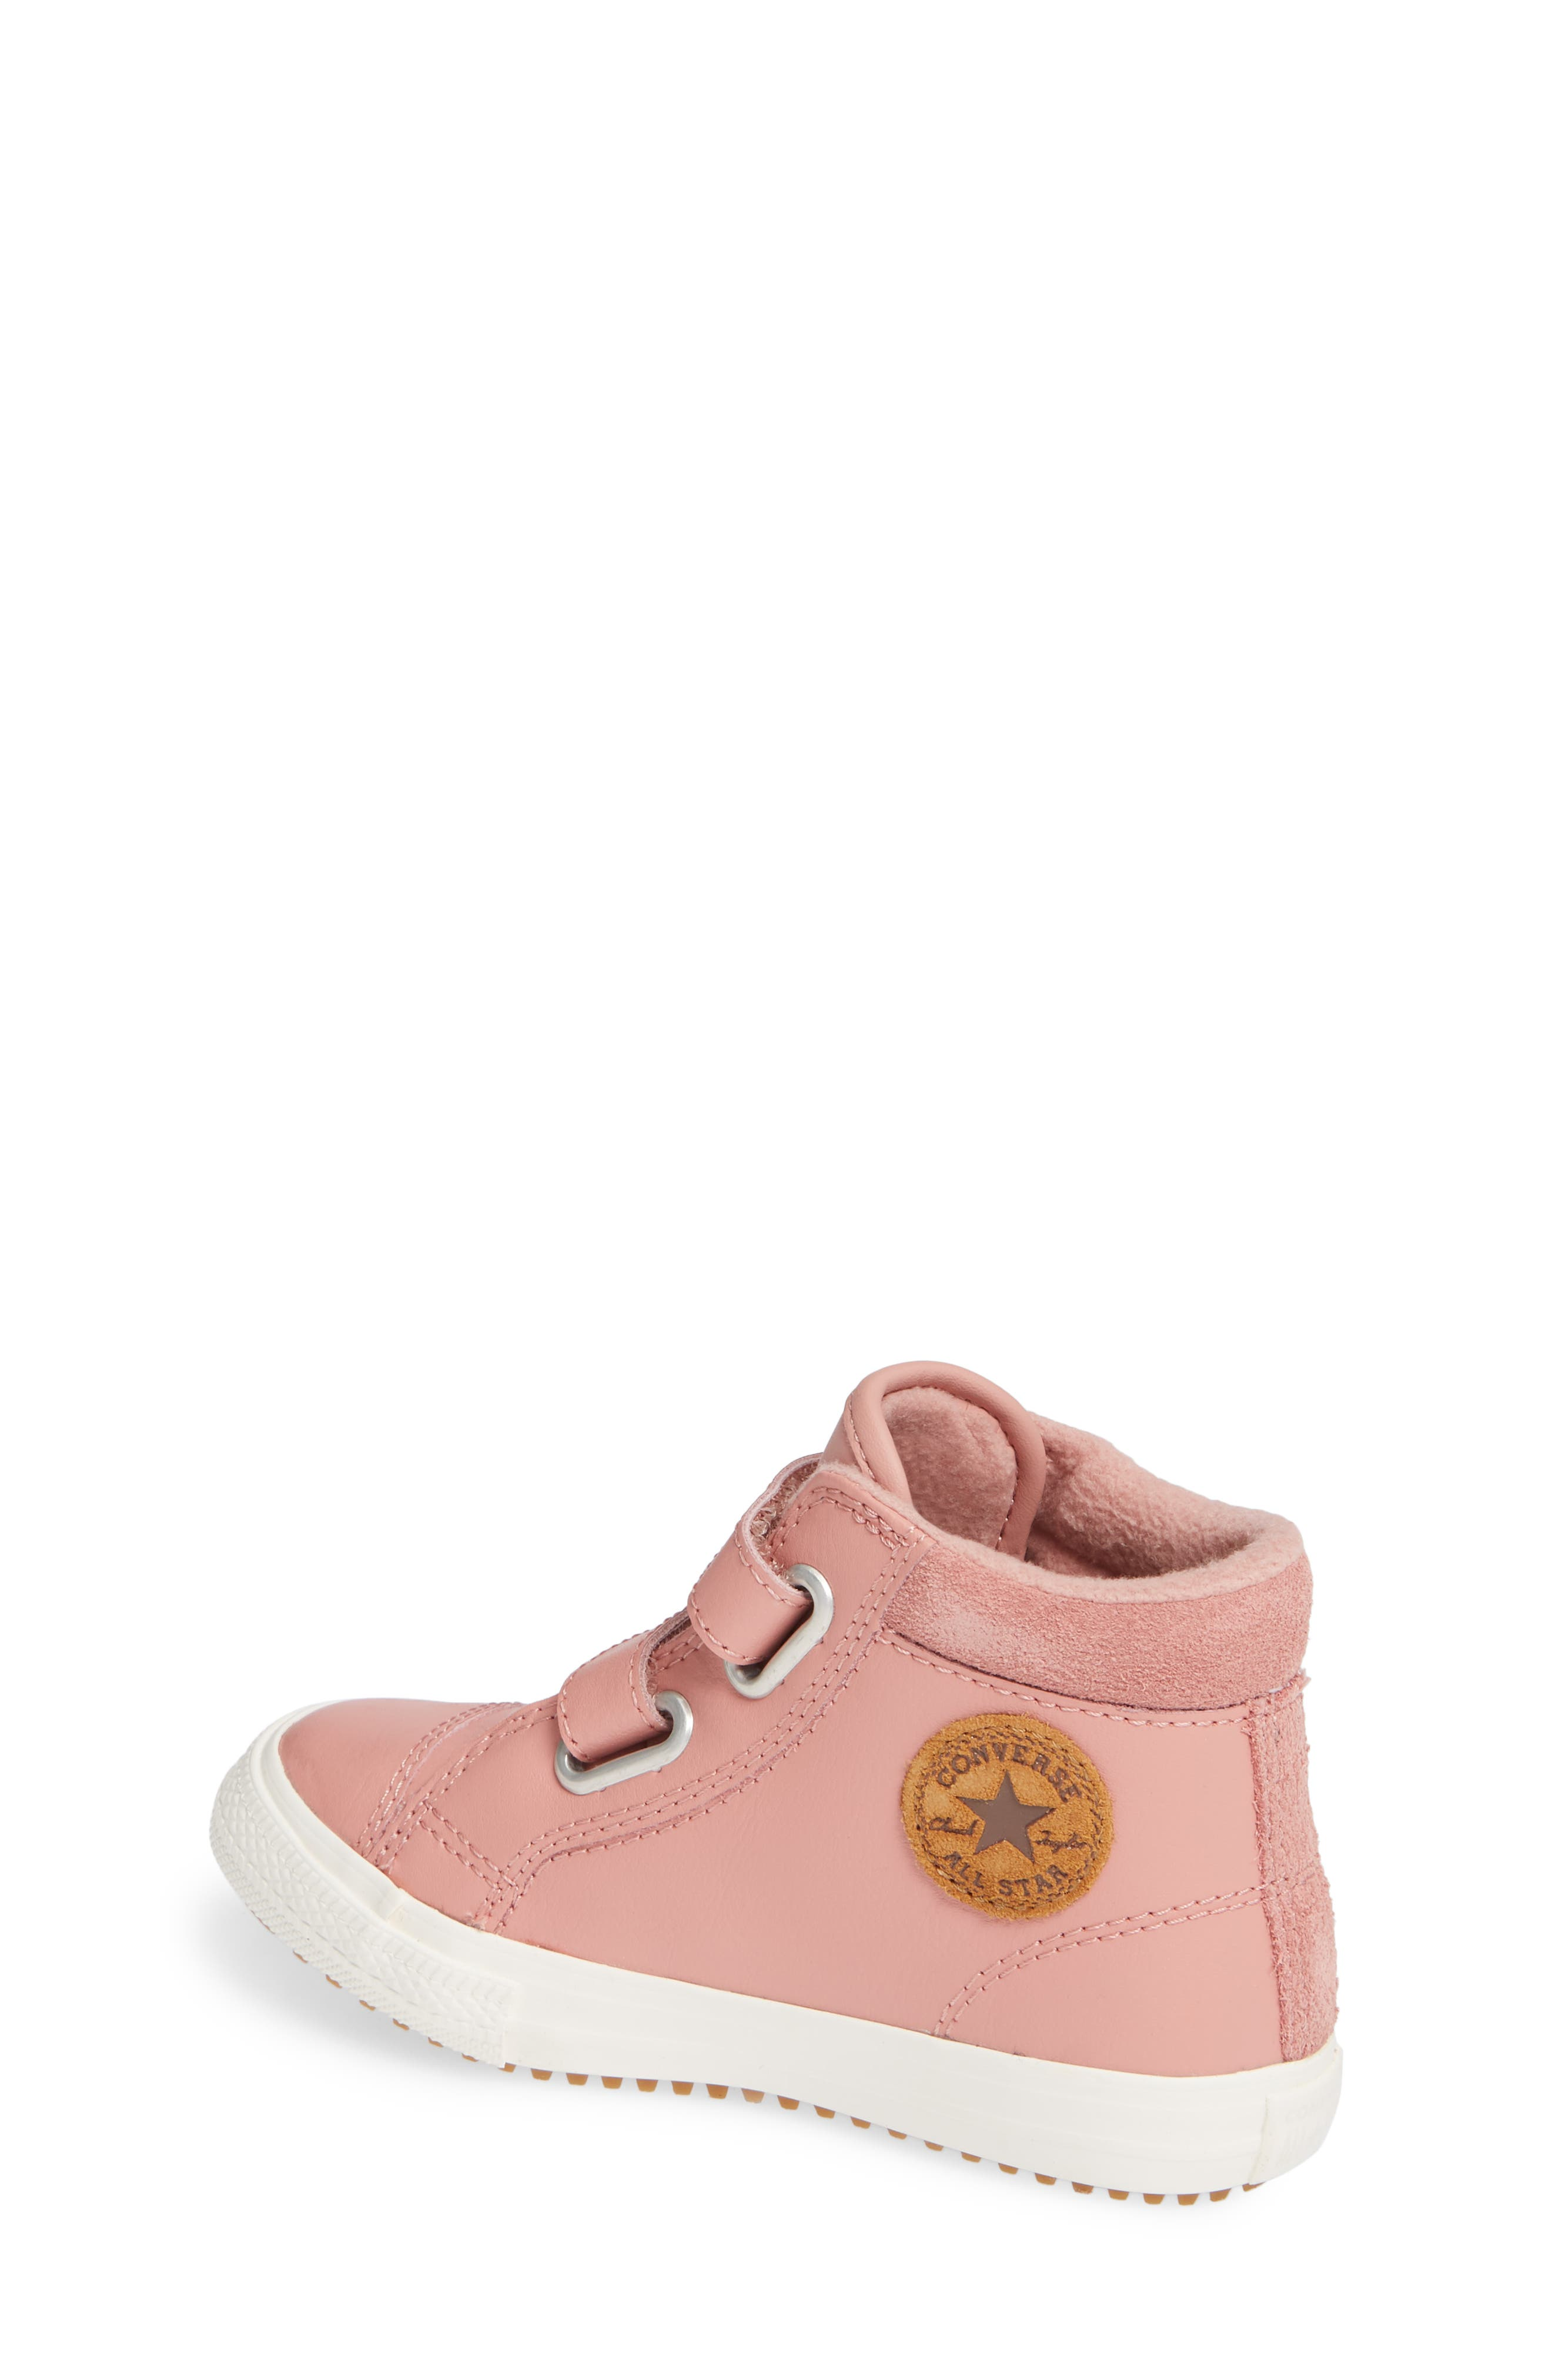 Chuck Taylor<sup>®</sup> All Star<sup>®</sup> 2V Leather High Top Sneaker,                             Alternate thumbnail 2, color,                             RUST PINK